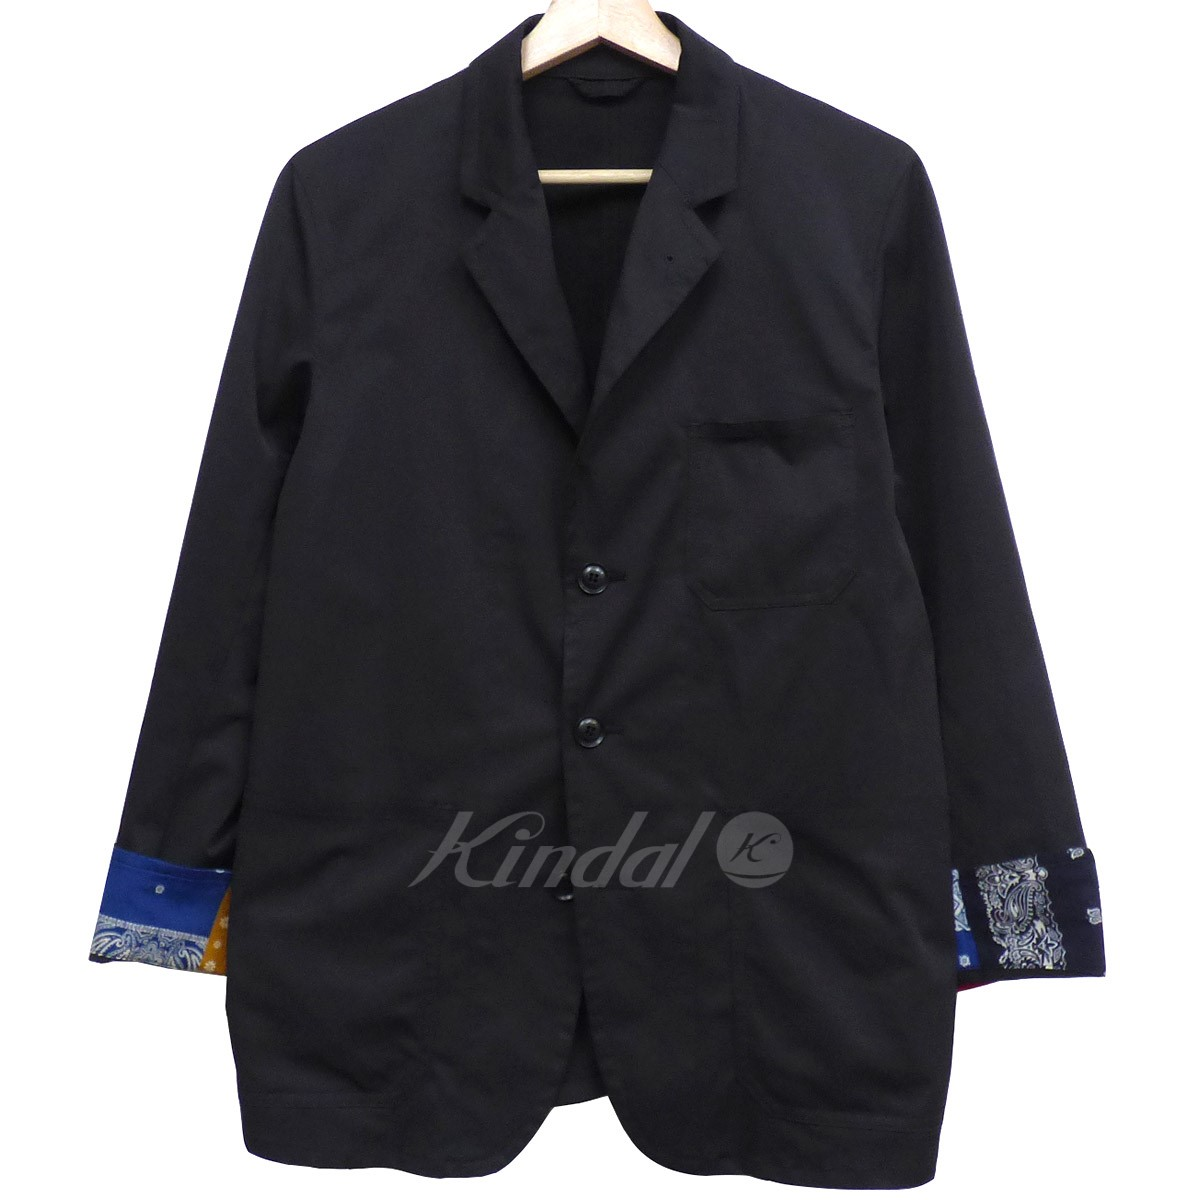 【中古】SOPHNET. 18AW 3BUTTON JACKET FABRIC BY SOLOTEX3Bポリエステルジャケット 【送料無料】 【002362】 【KIND1550】